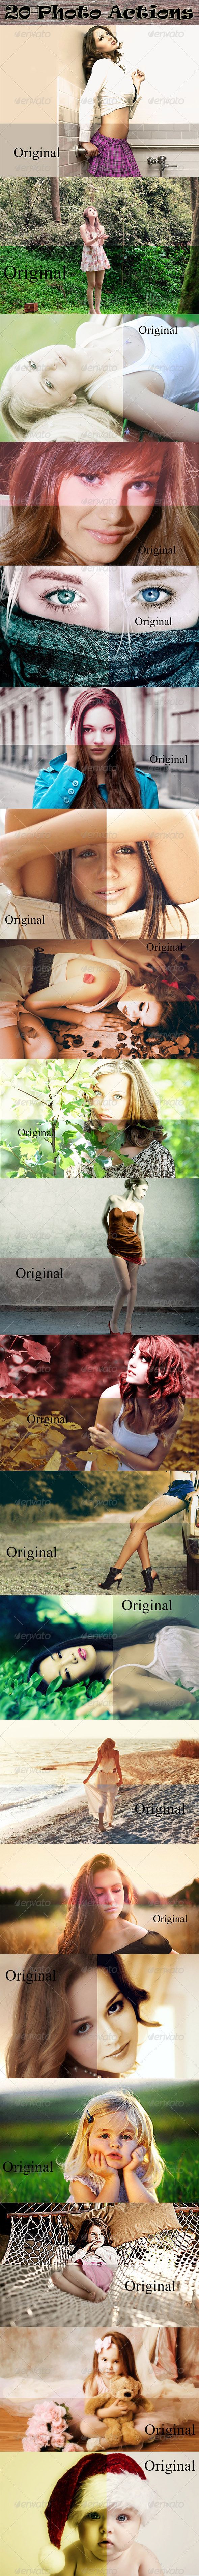 GraphicRiver 20 Photo Actions 8715853